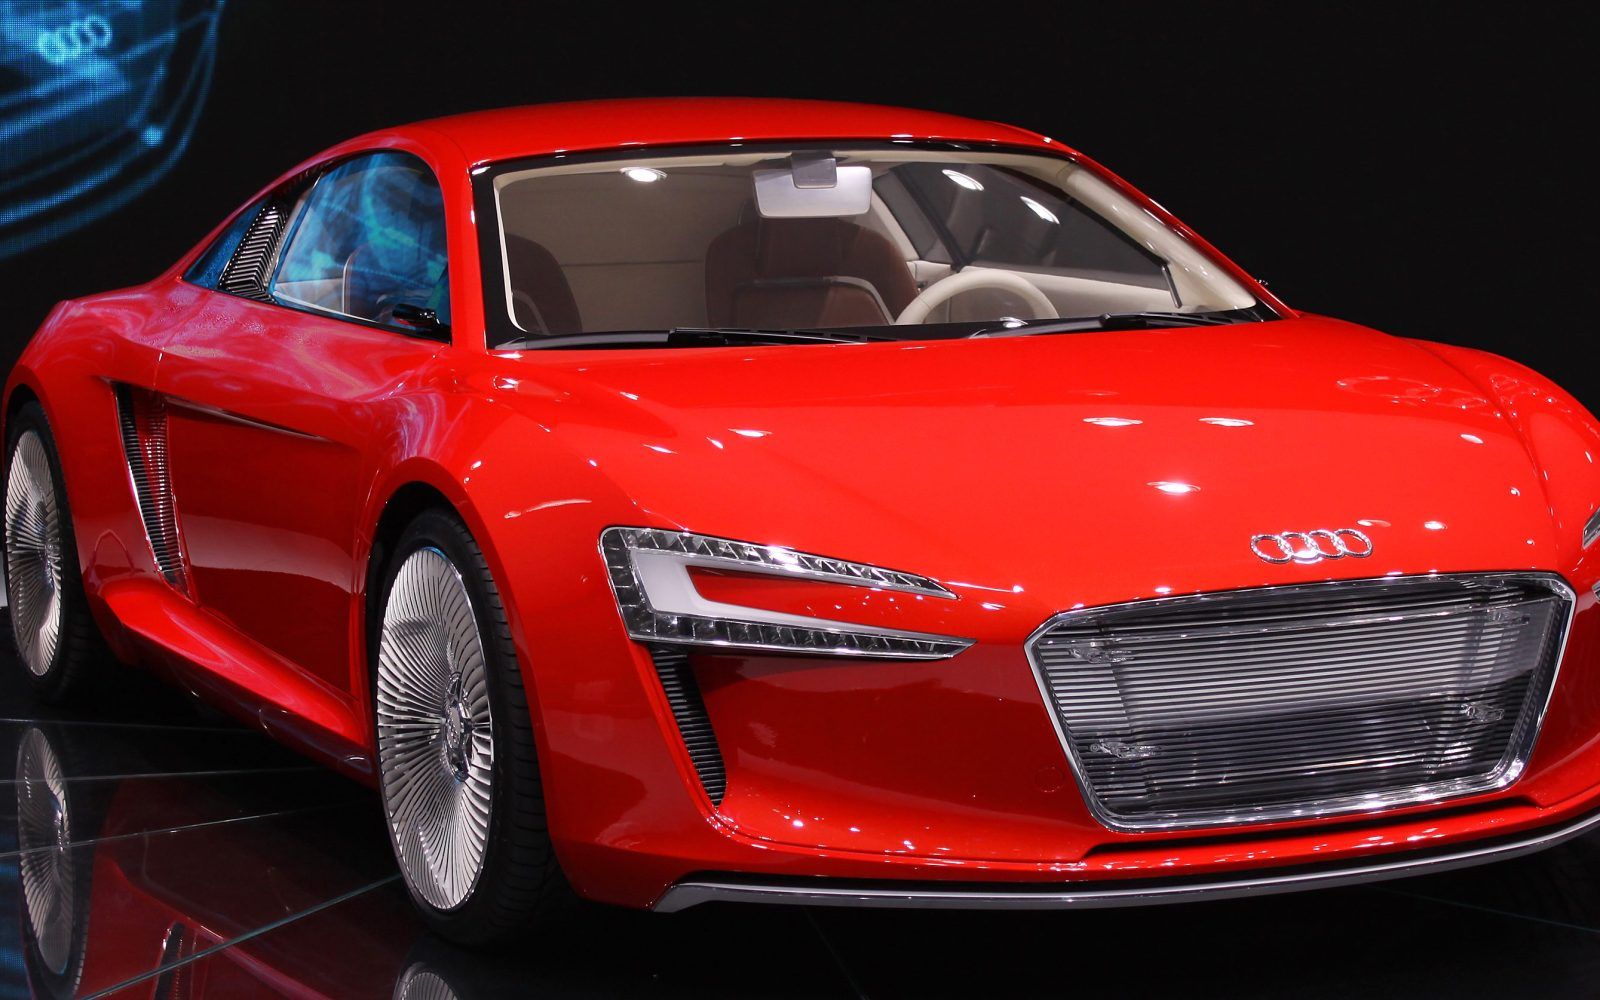 Audi S All Electric E Tron Supercar Is Dead They Couldn T Sell A 1